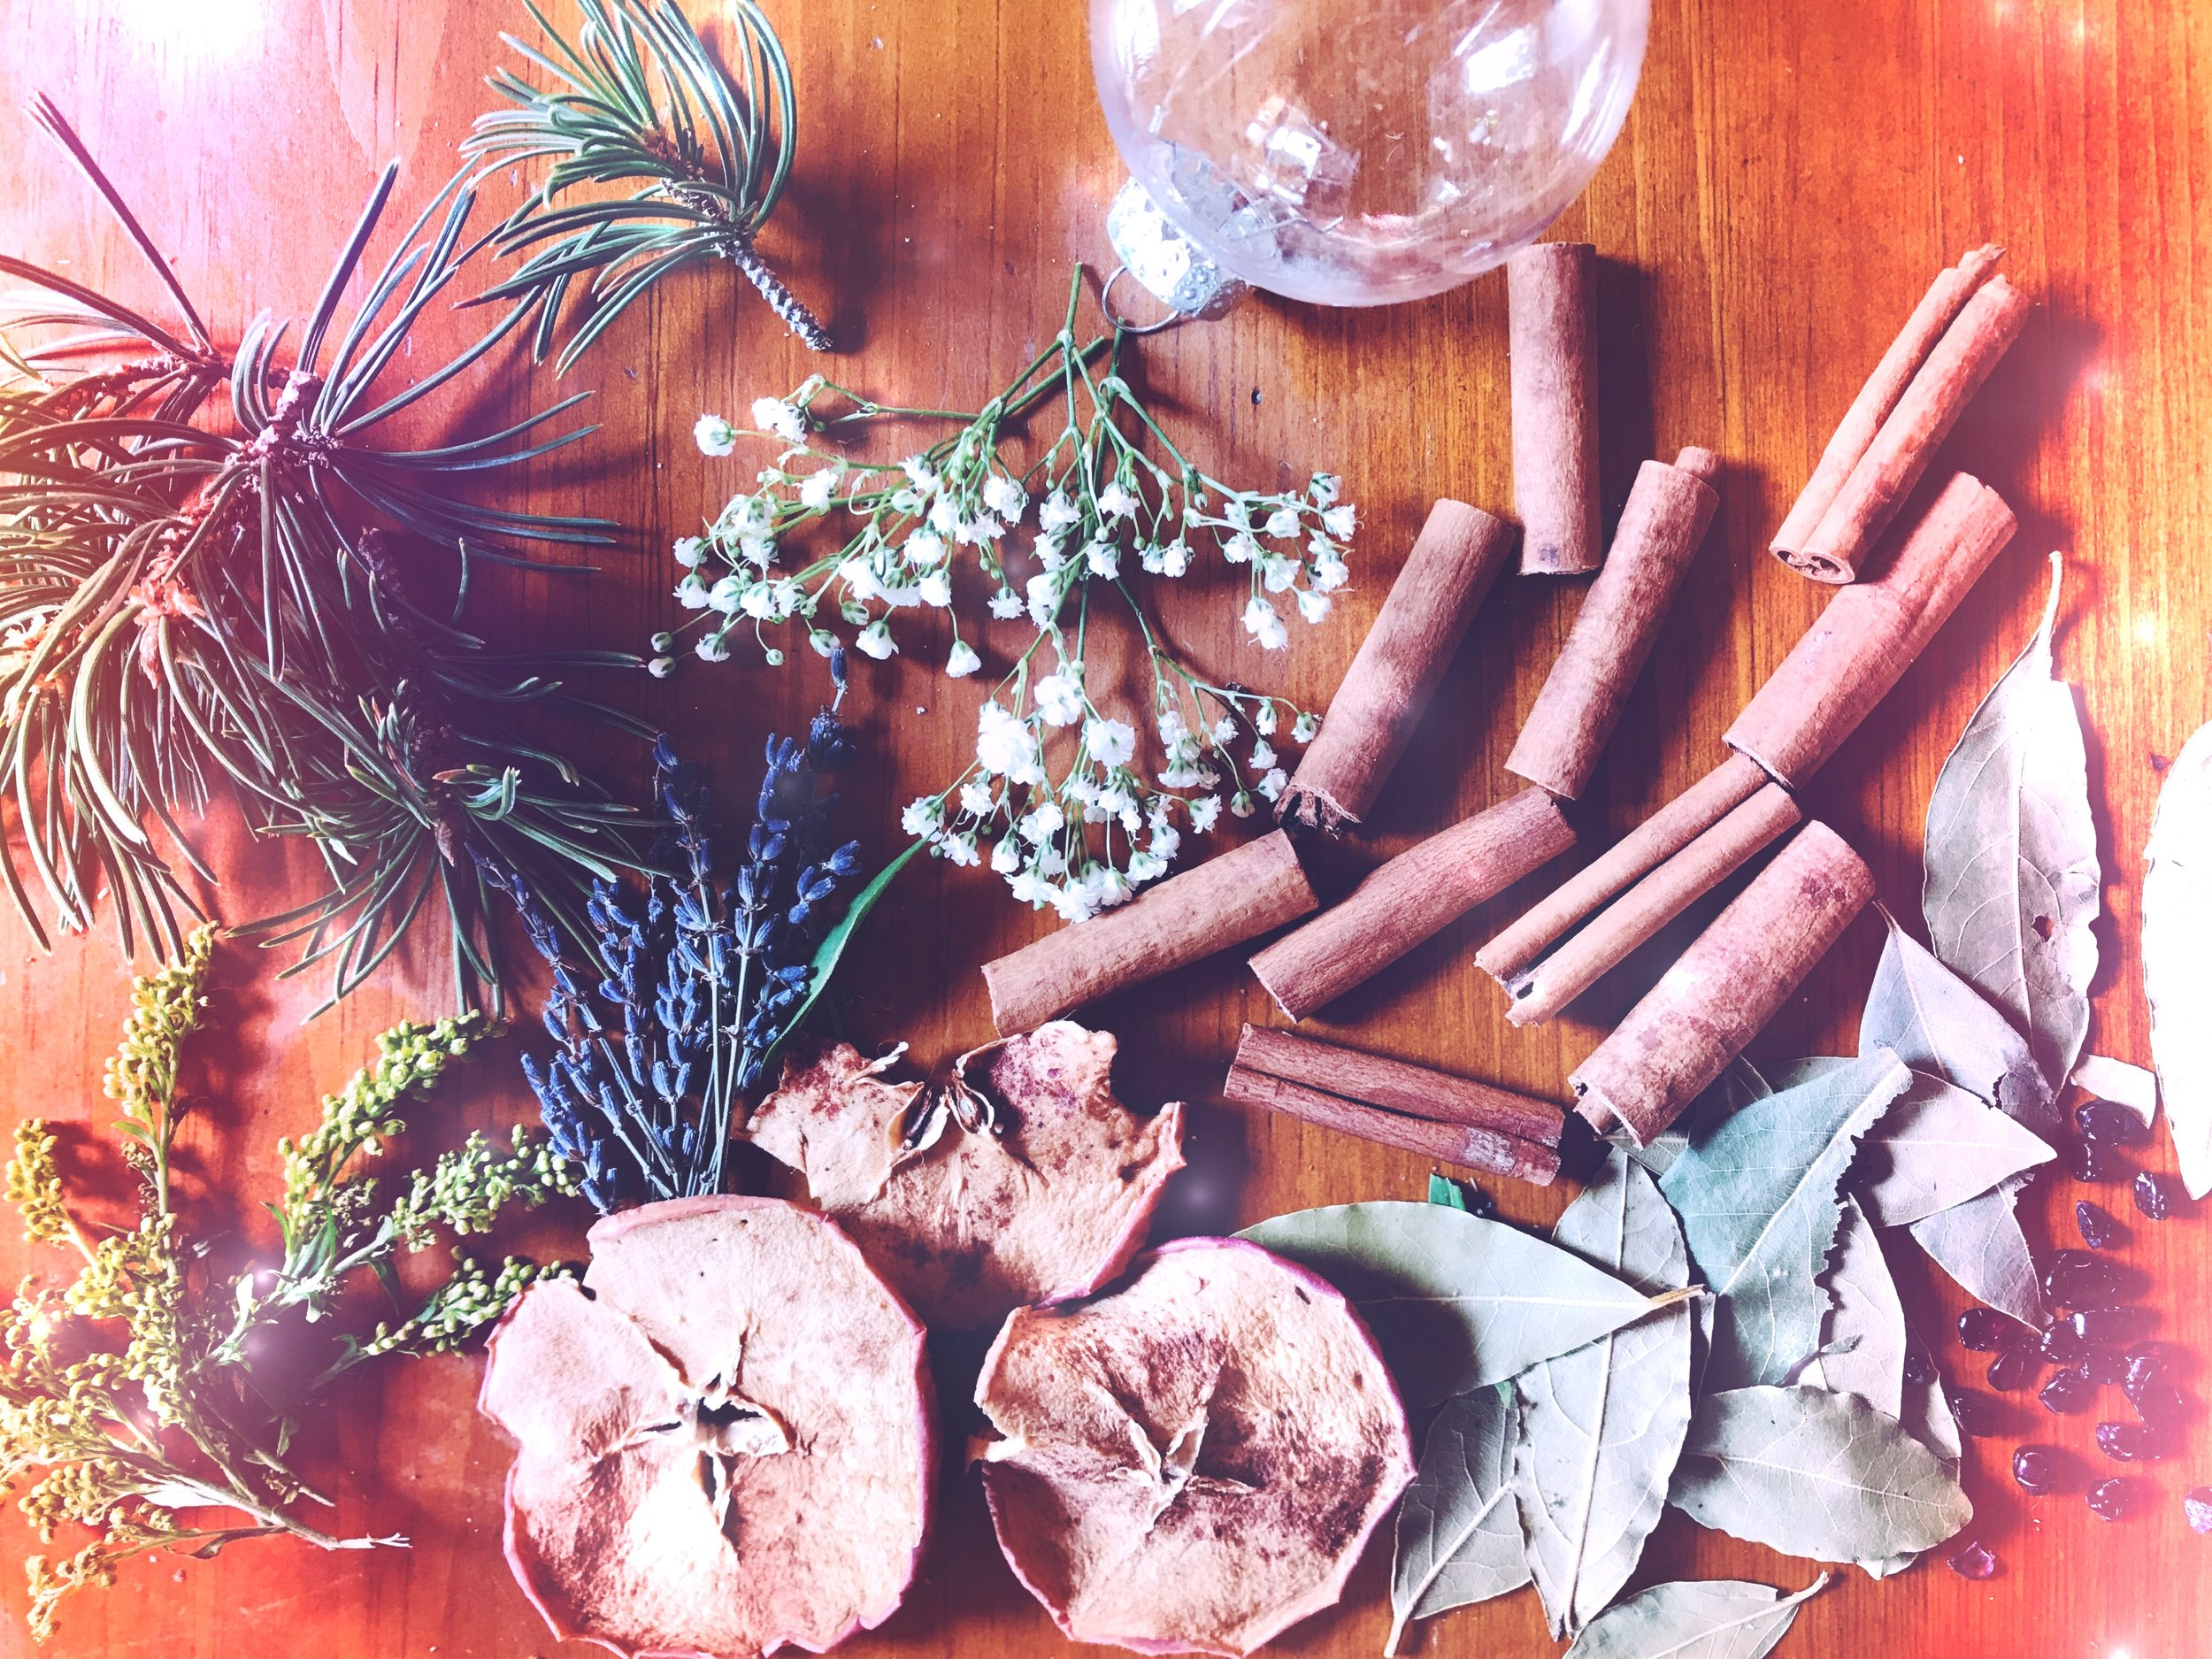 Herbs and Offerings for the Yule and Winter Season | Creating a witches bottle | Spirit de la Lune